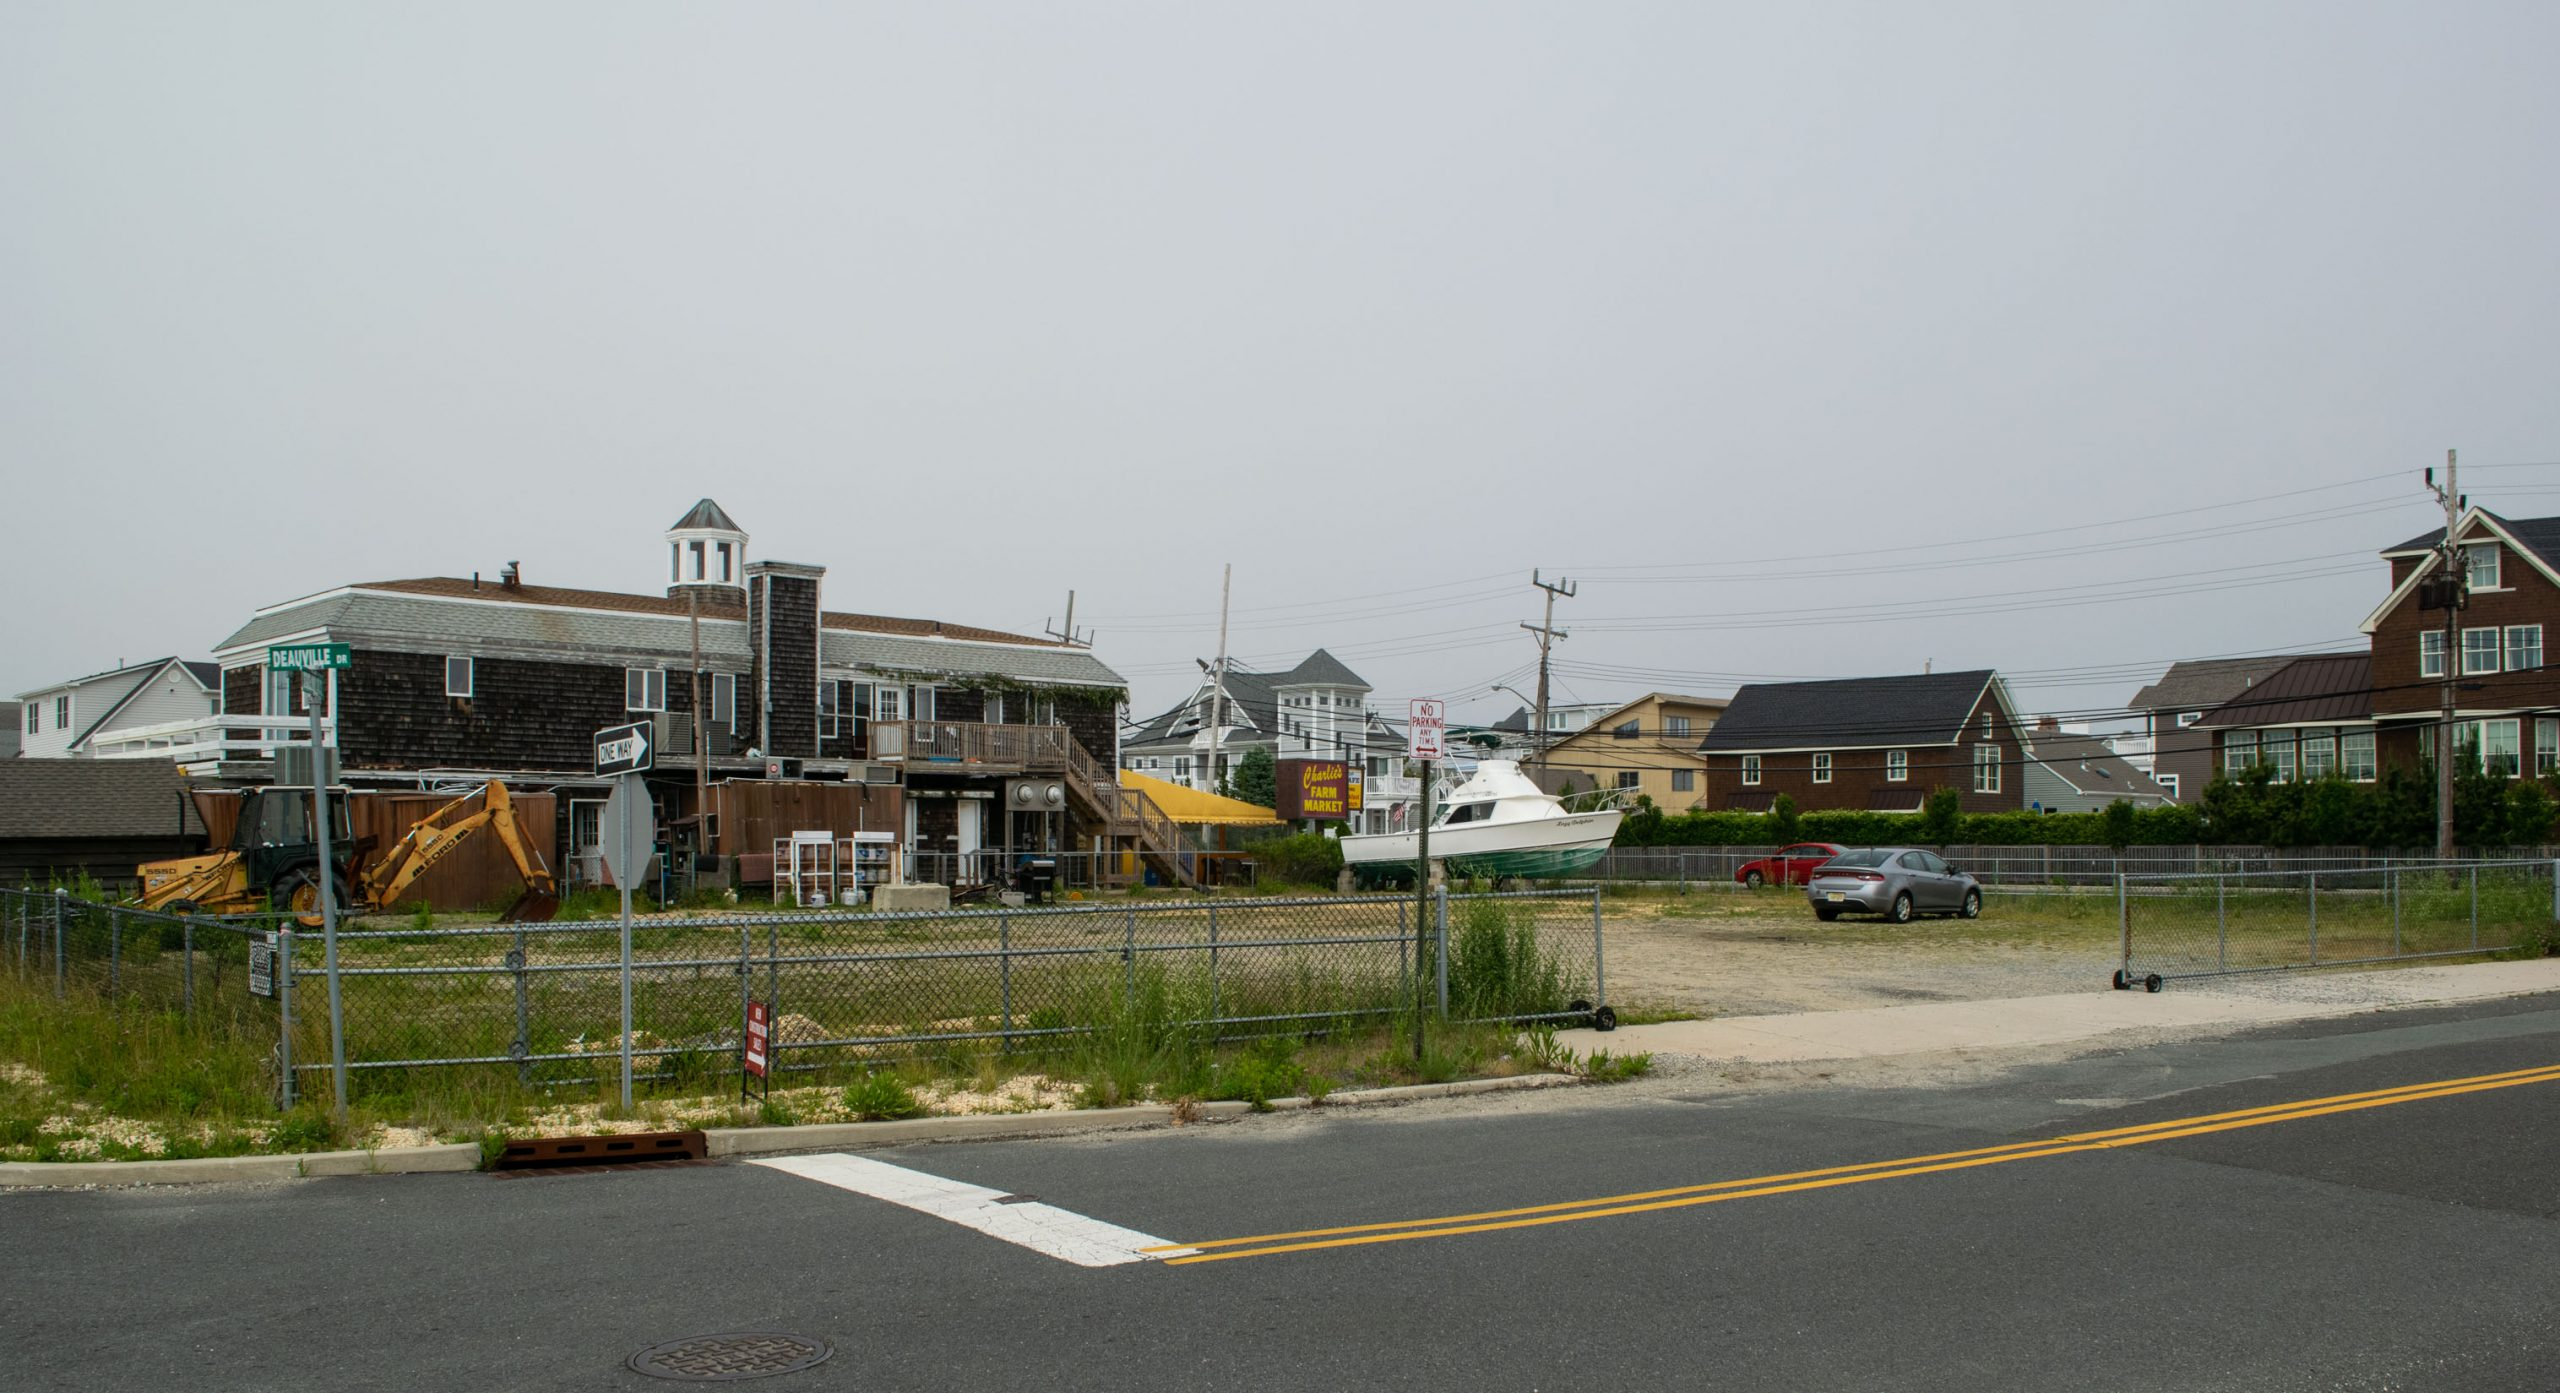 The Brick planning board approved the construction of three new homes along Route 35, June 2020. (Photo: Daniel Nee)